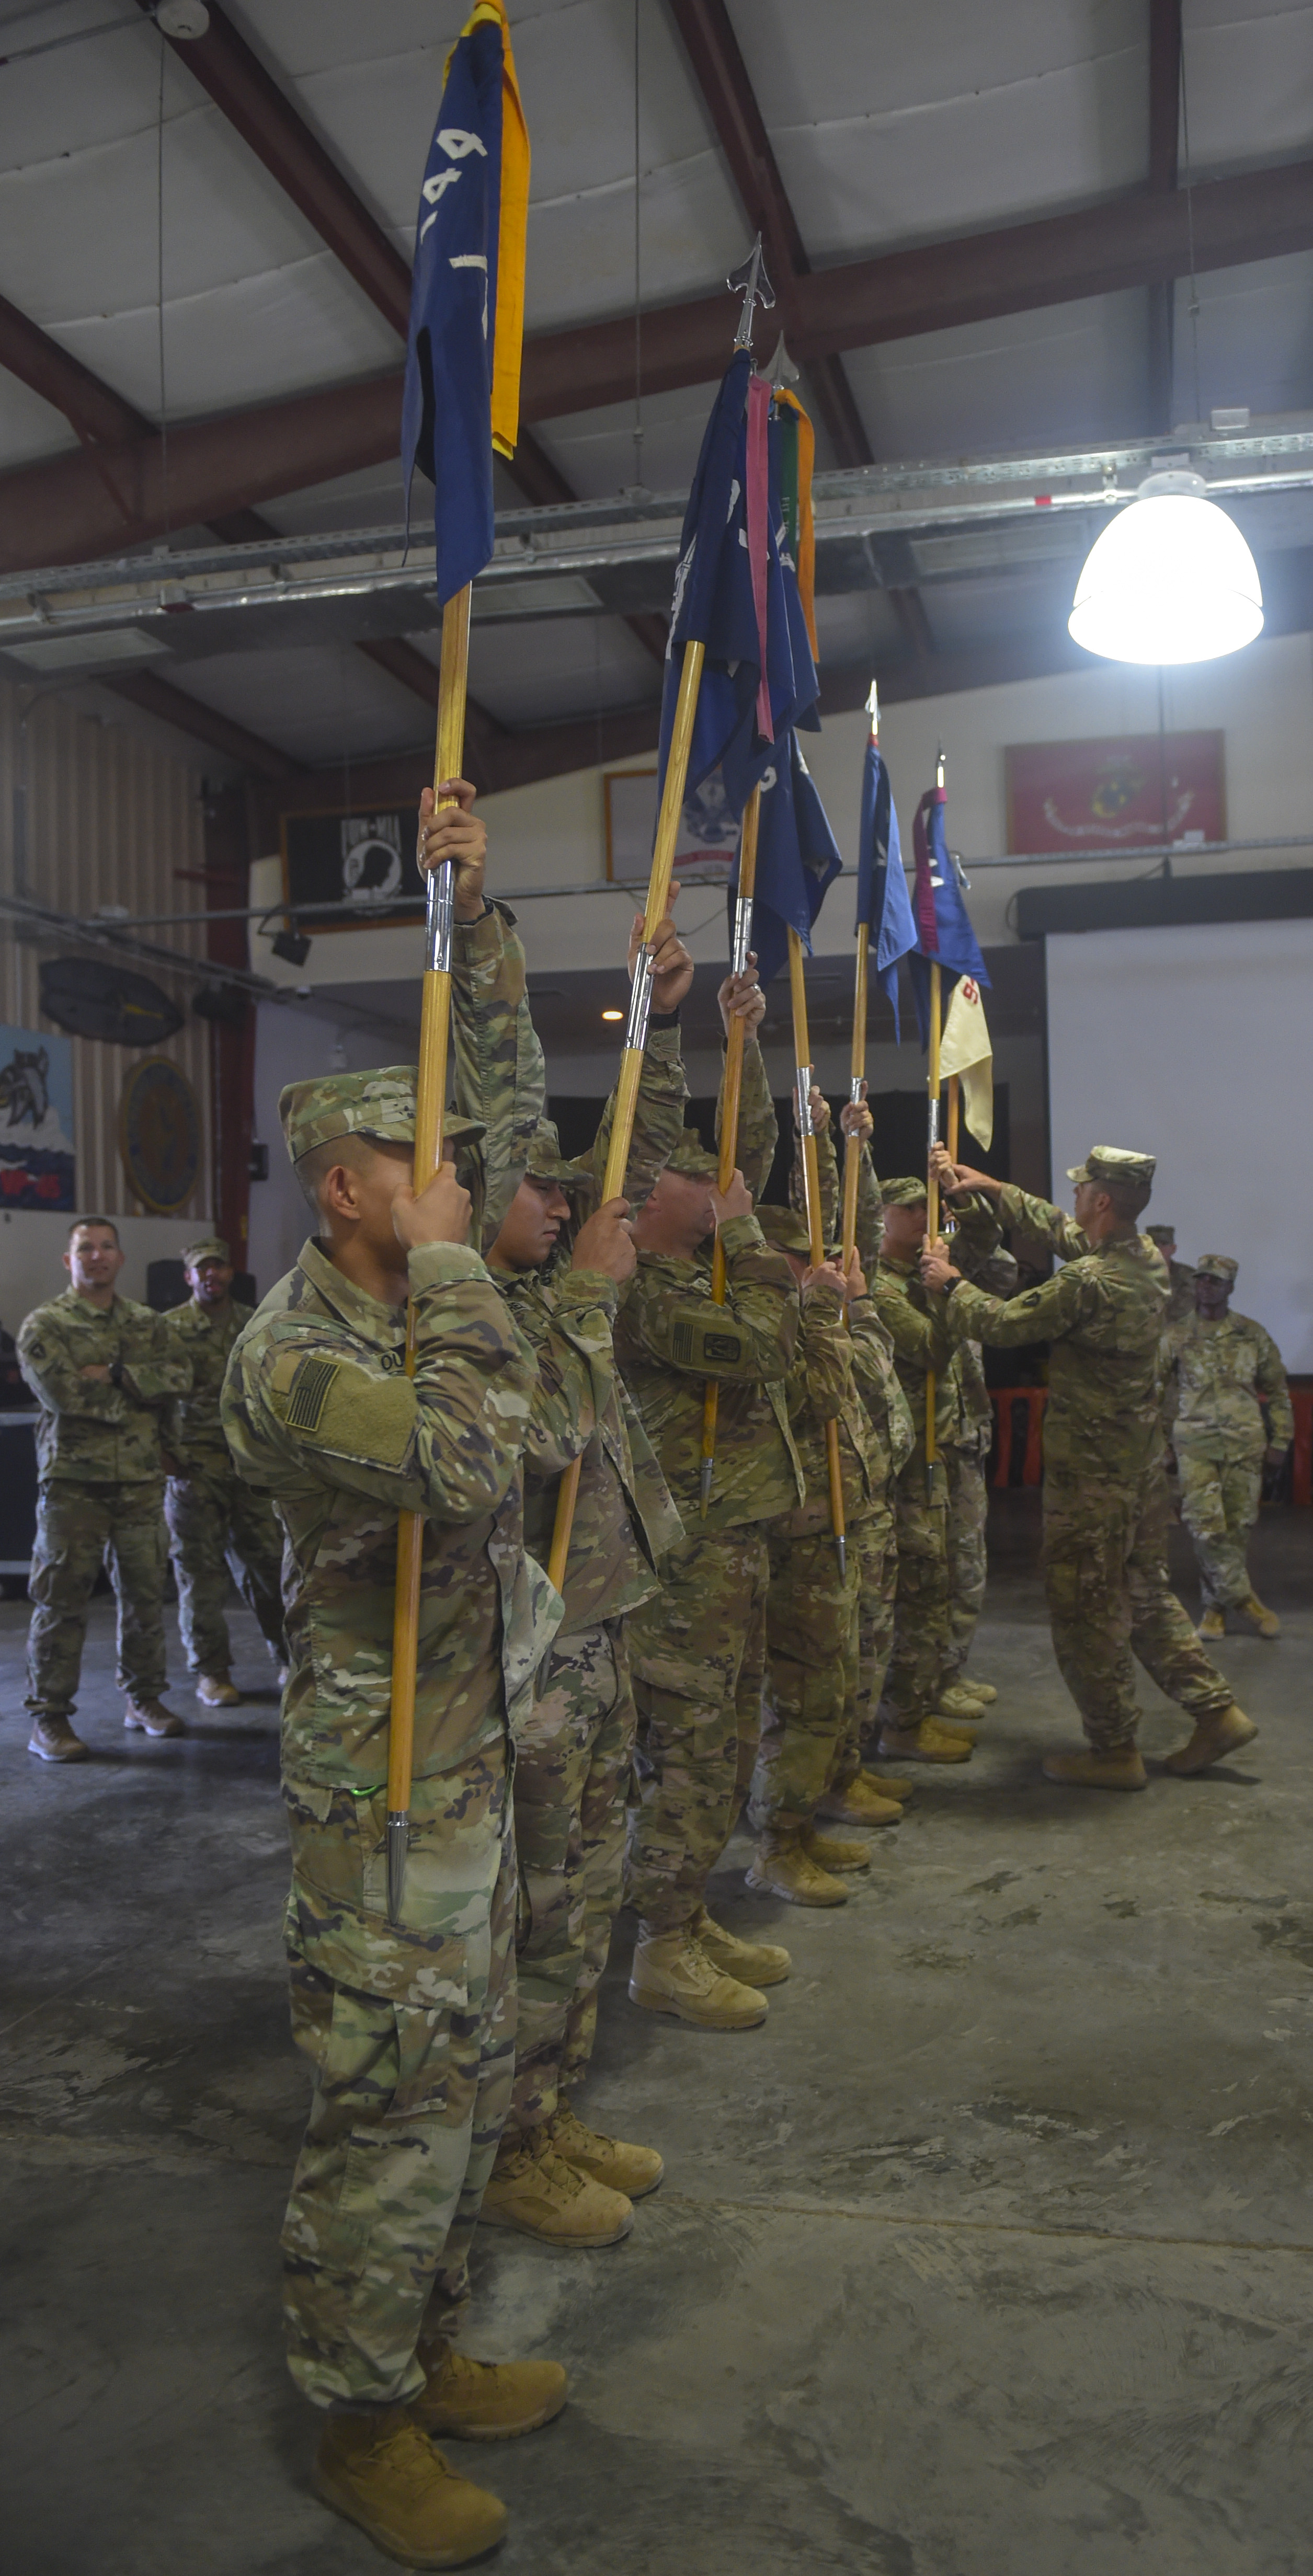 U.S. Army Soldiers assigned to the 3rd Battalion, 144th Infantry Regiment conduct rehearsals before a transfer of authority ceremony at Camp Lemonnier, Djibouti, Nov. 1, 2017. During the ceremony, the Soldiers officially took over the security force mission for the Combined Joint Task Force – Horn of Africa's area of responsibility from the 1st Battalion, 153rd Infantry Regiment. (U.S. Air Force photo by Staff Sgt. Timothy Moore)